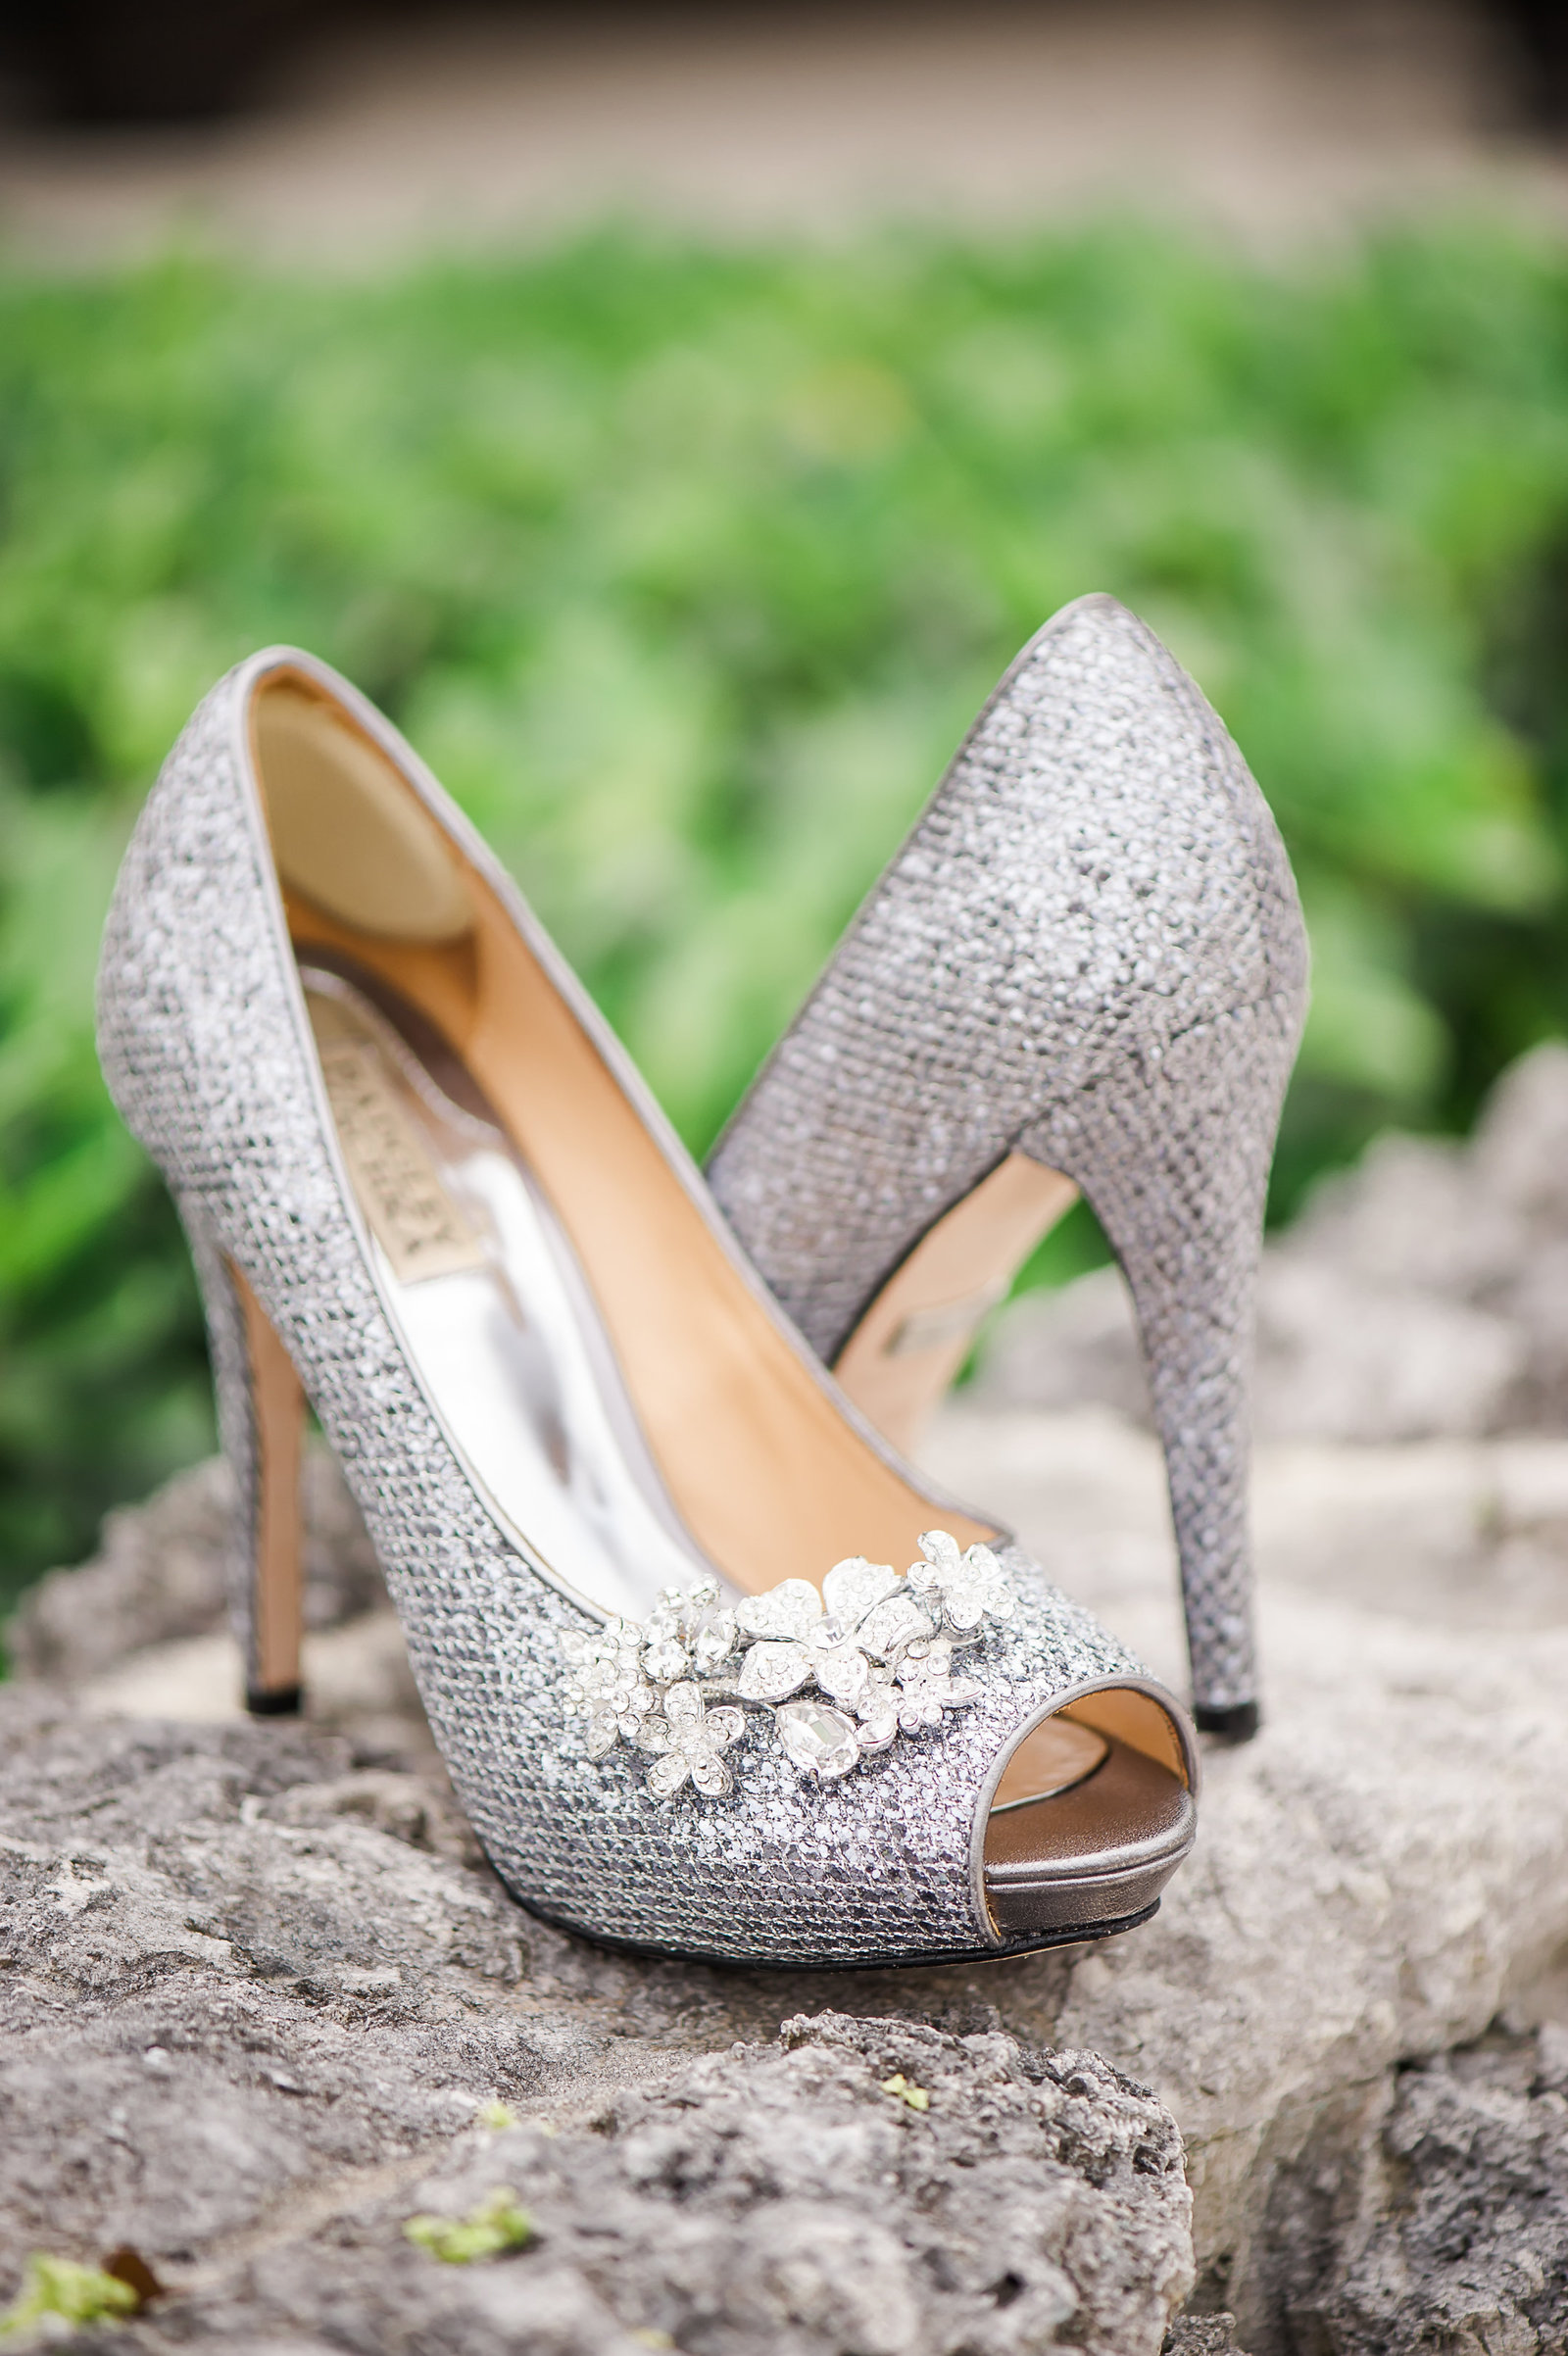 Wedding Shoes - Myacoo Country Club Wedding - Palm Beach Wedding Photography by Palm Beach Photography, Inc.